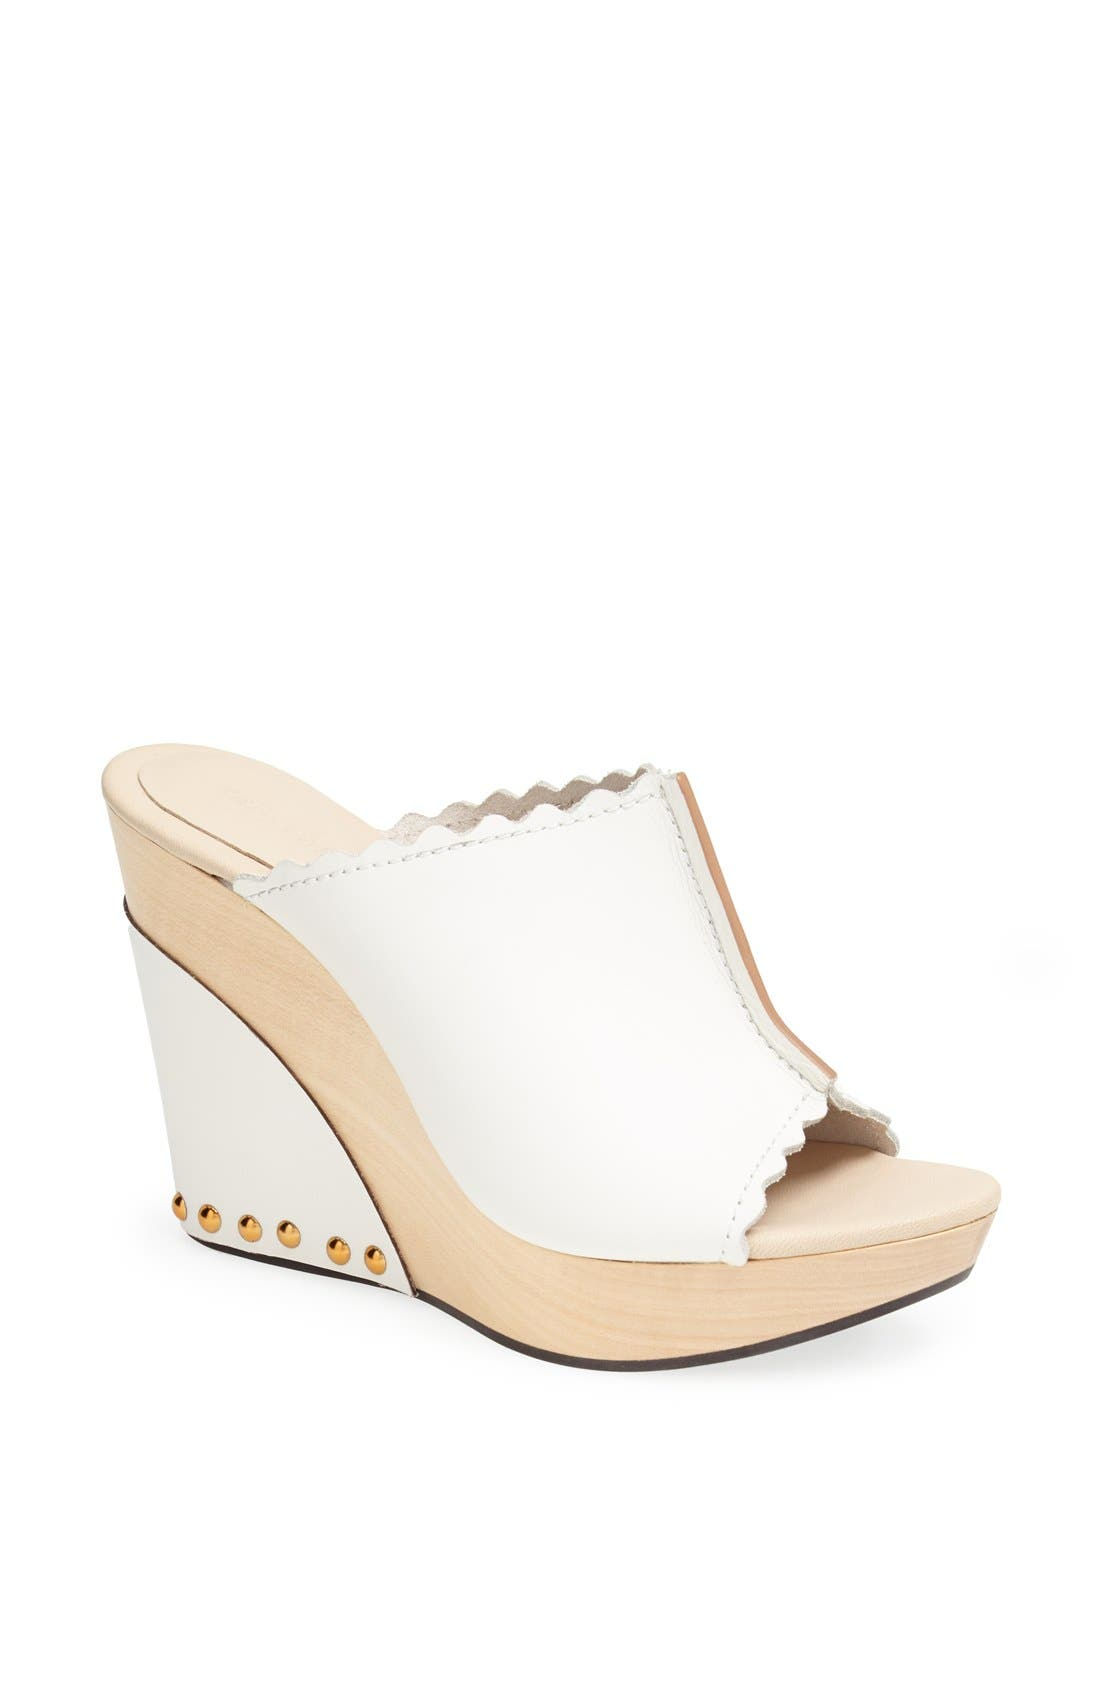 Alternate Image 1 Selected - See by Chloé Wedge Slide Sandal (Online Only)